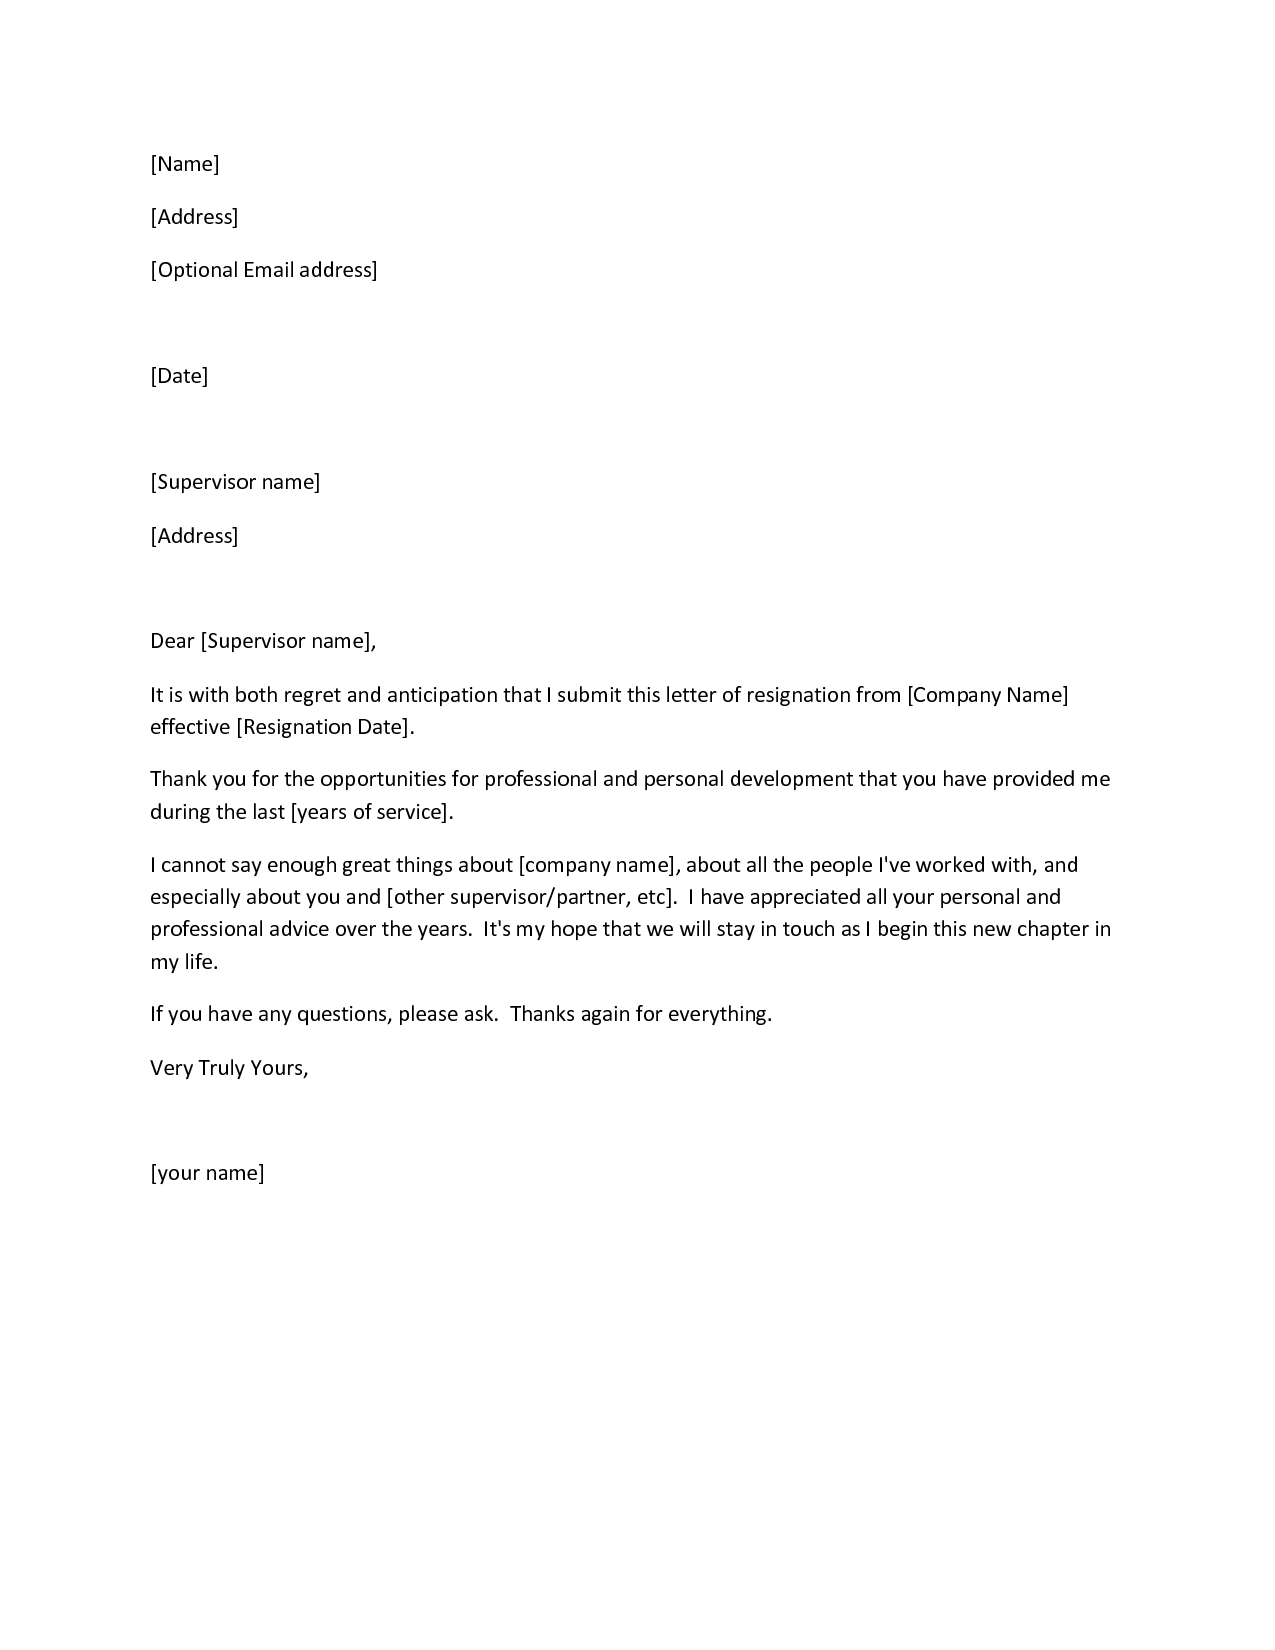 Letters Of Resignation Samples Printable Sample Letter Of Resignation Form  Laywers Template .